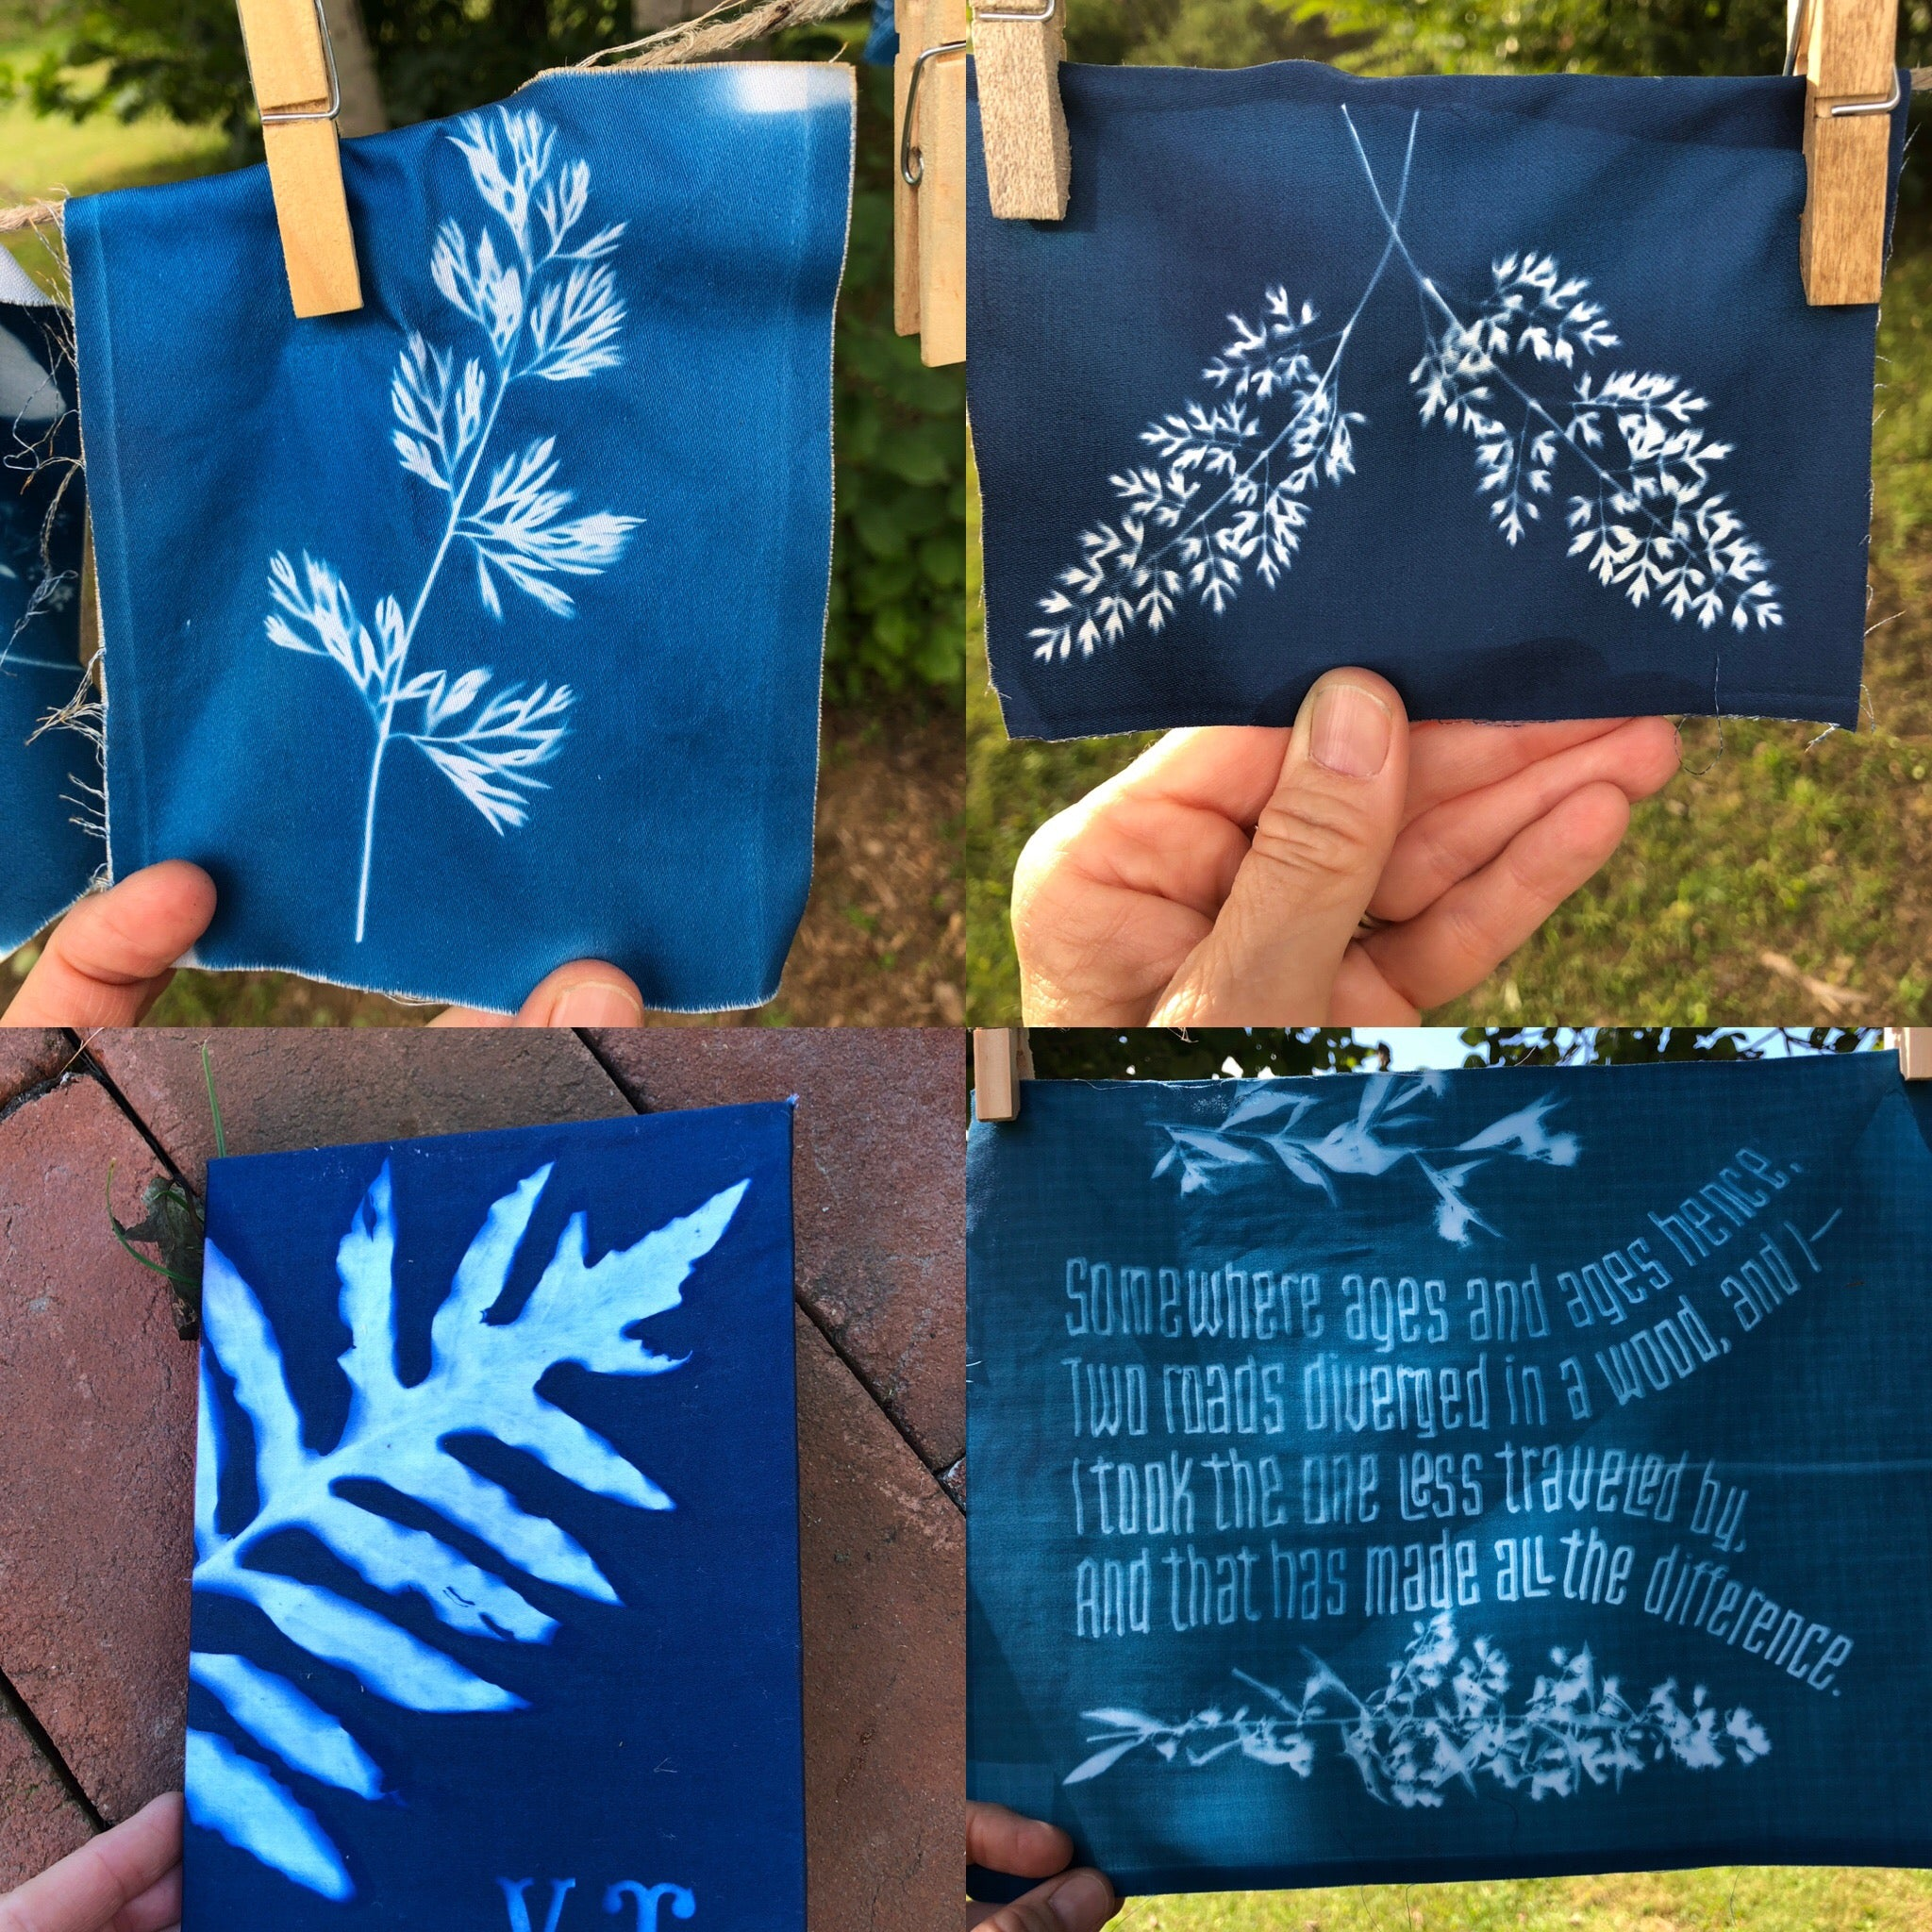 Into the Blue: Explorations with Cyanotype with Molly Meng / Saturday, June 8th / 10-2pm